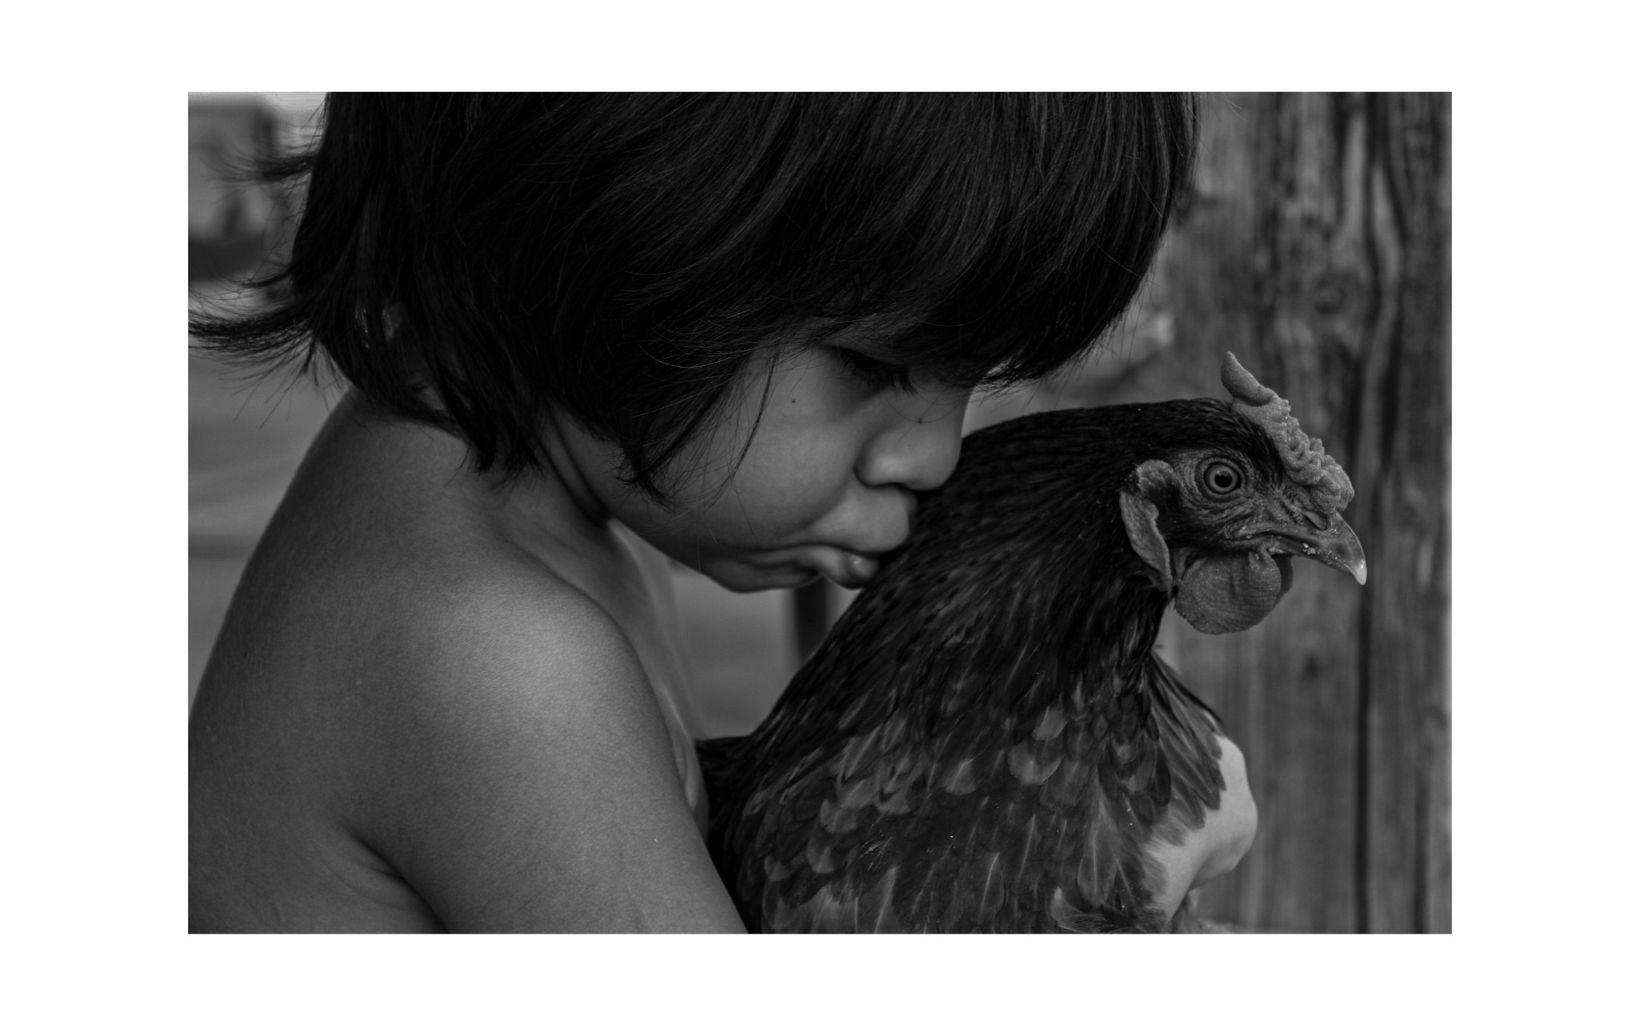 Black and white photo of a shirtless child with straight black hair with his lips pressed against the back of the neck of a chicken.